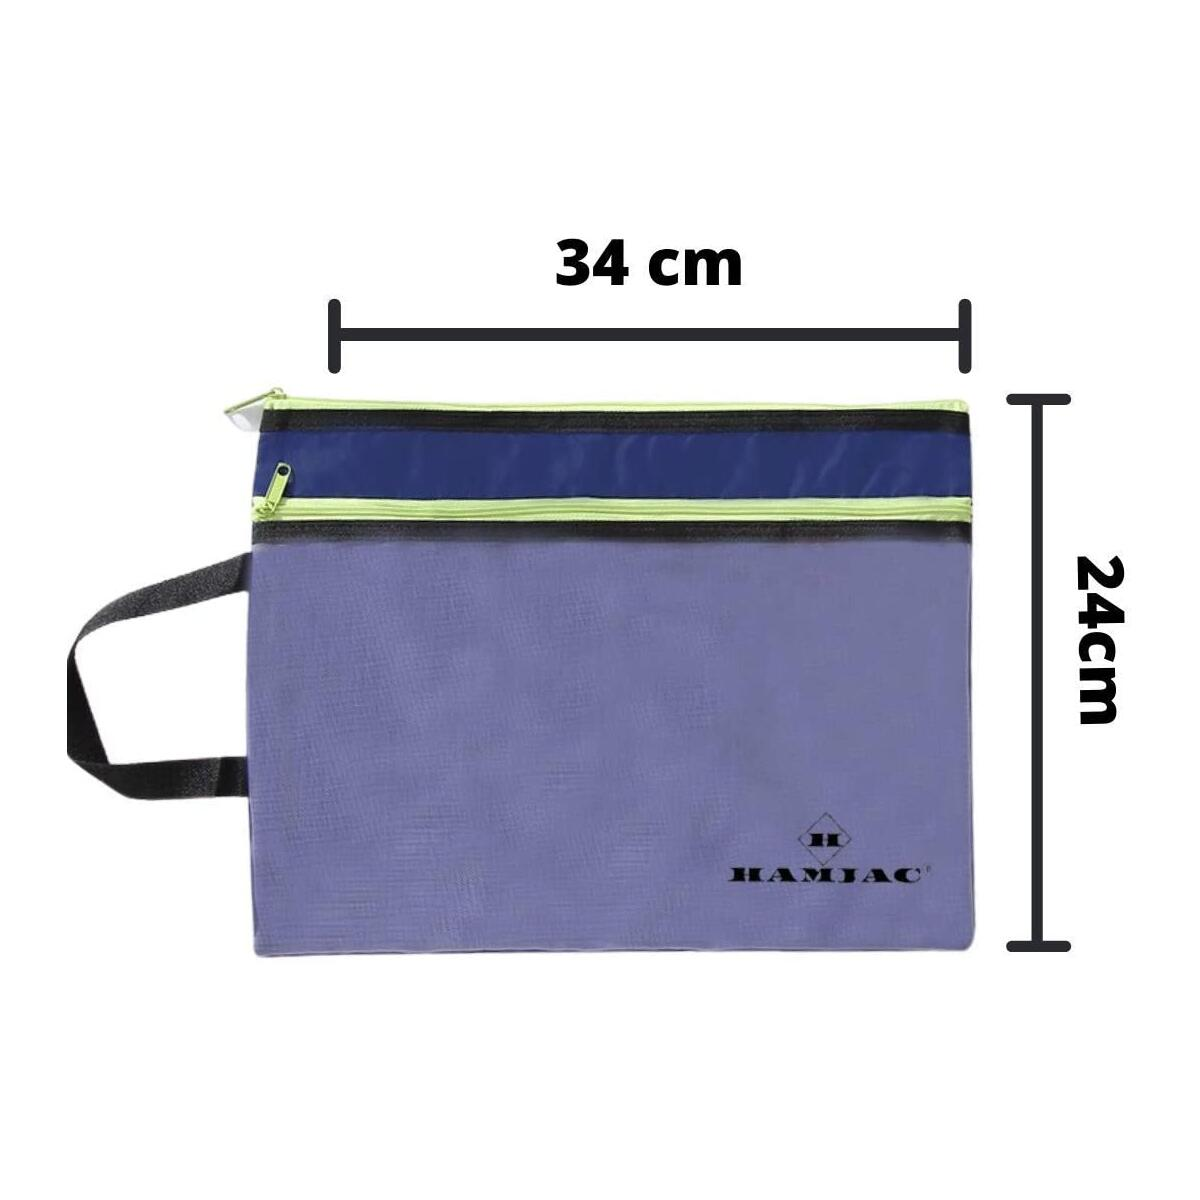 Hamjac Mesh Zippered Bag – Plastic Mesh Zipper Pouch – 2 Zip Pockets Holder for Documents –Organizing Mesh Zipper Bag Letter Size A4 for School, Office, Travel Storage – 20pcs Blue and Cream